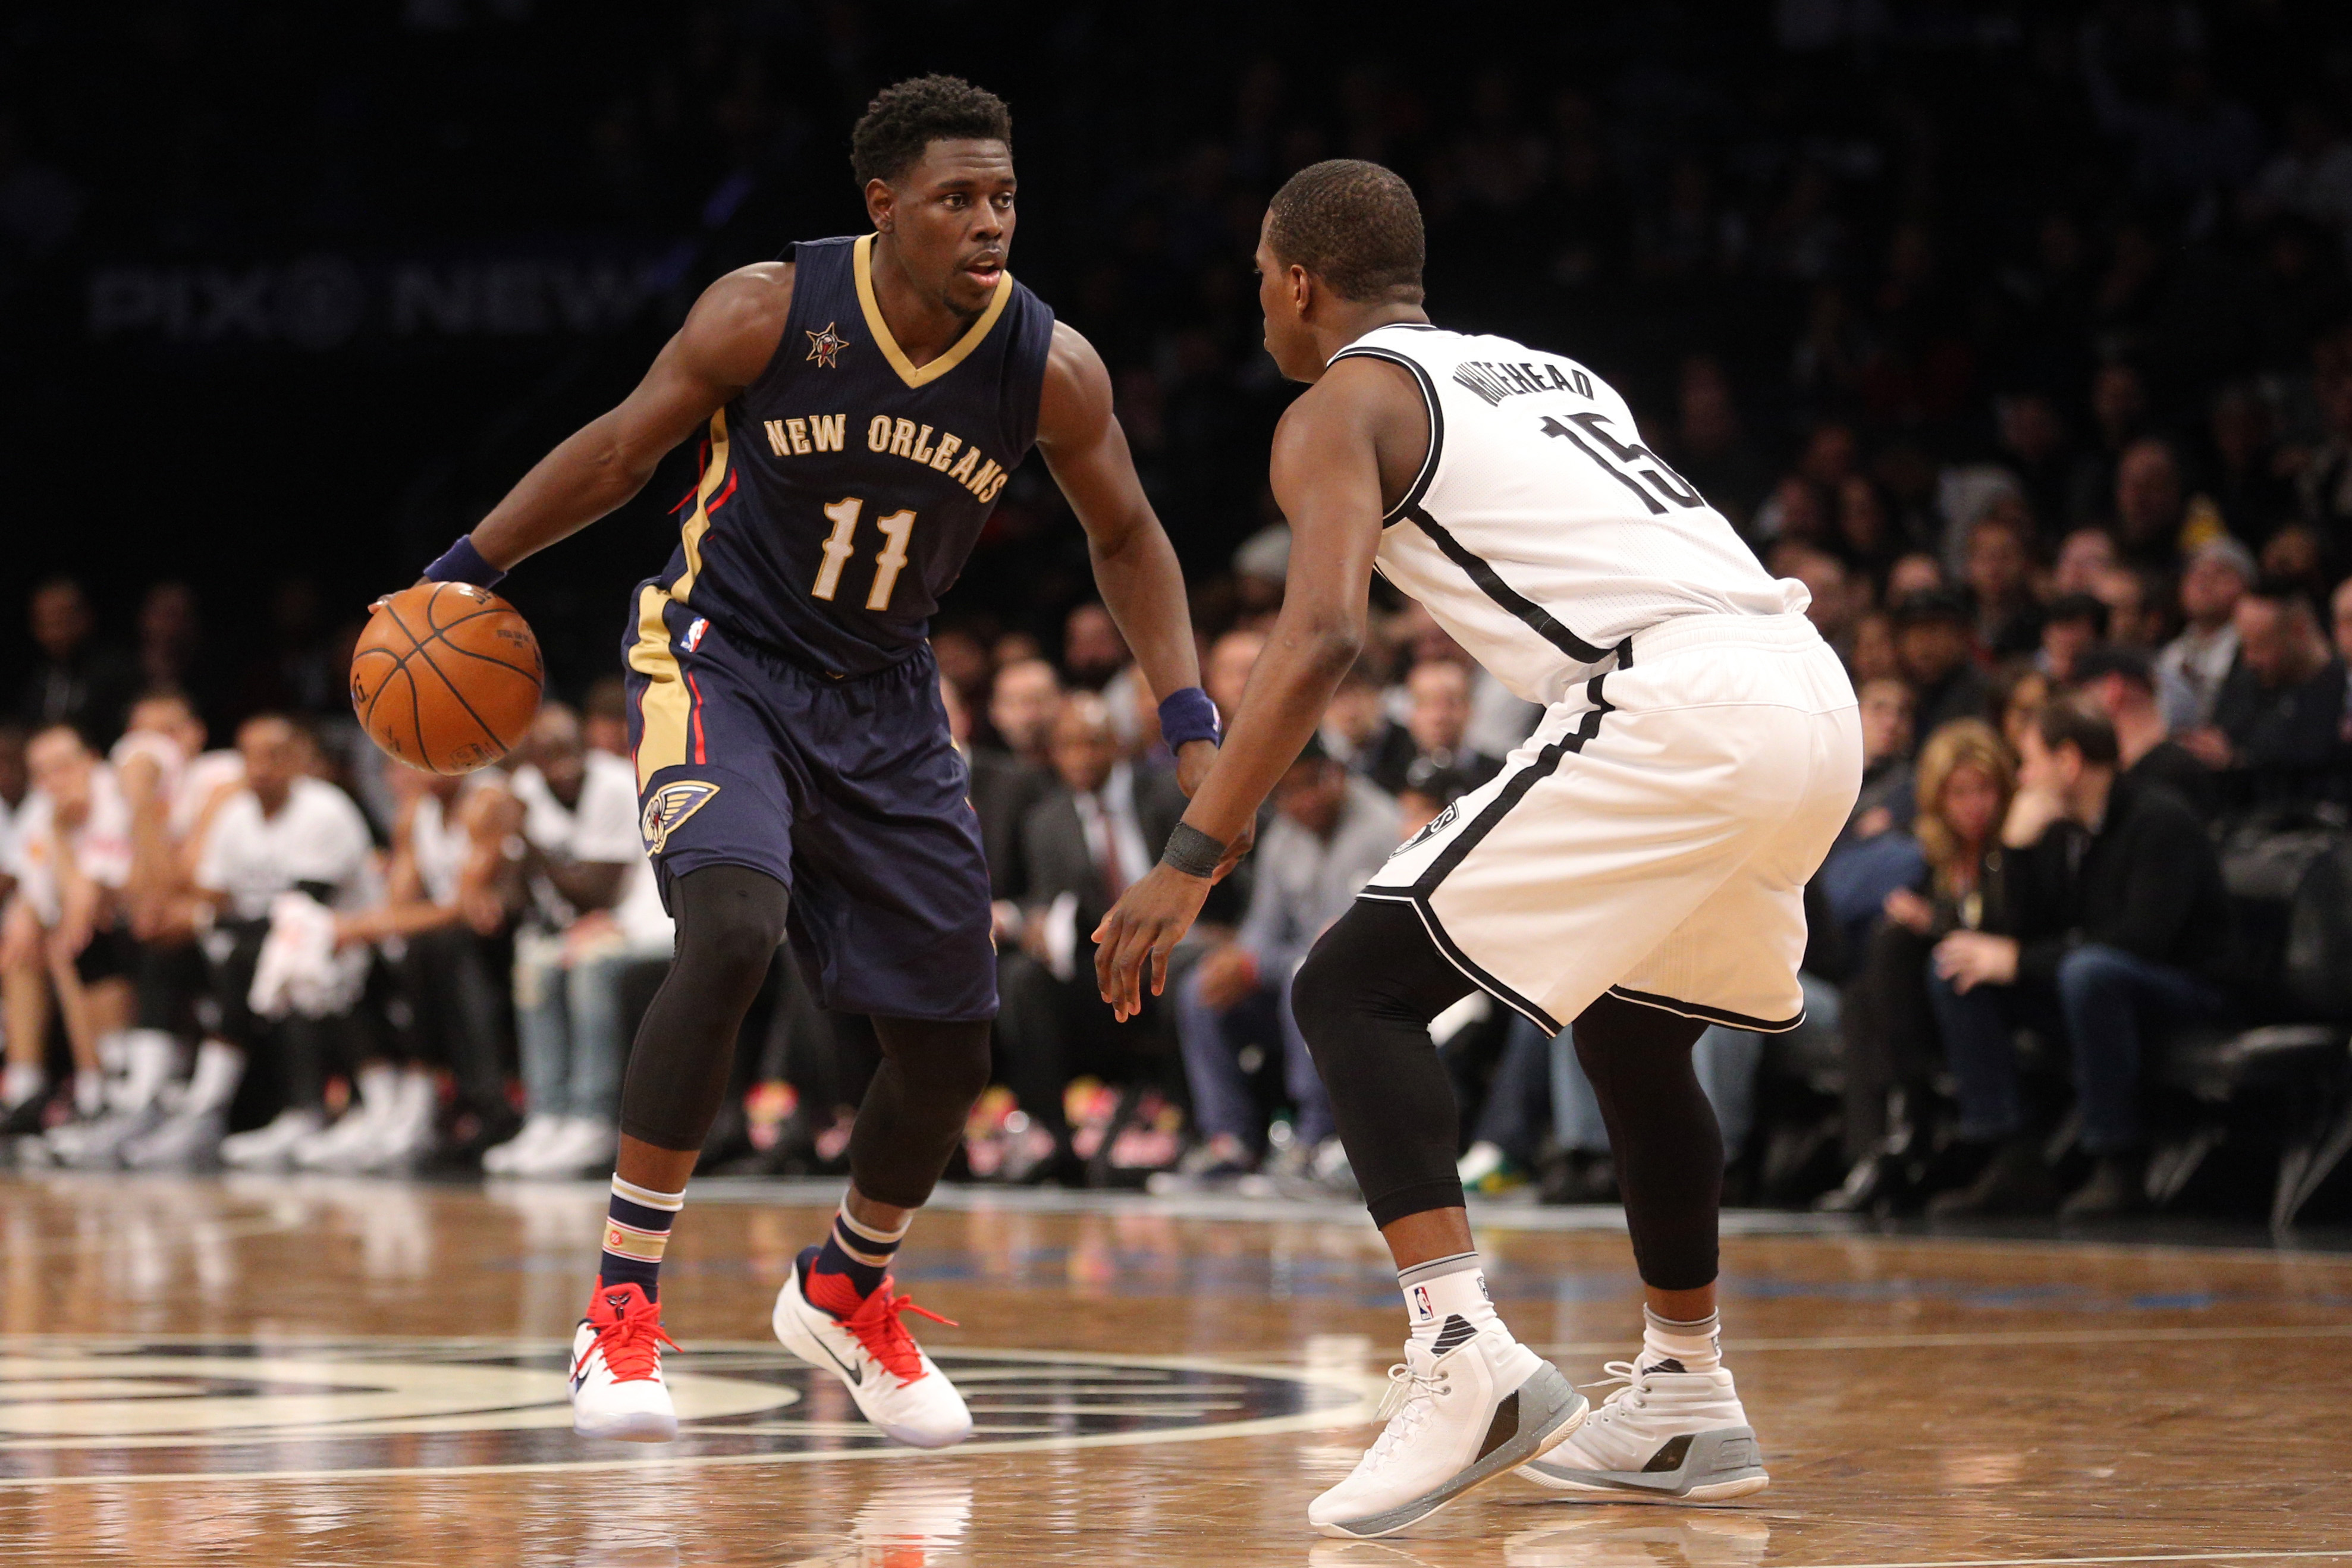 9806345-nba-new-orleans-pelicans-at-brooklyn-nets